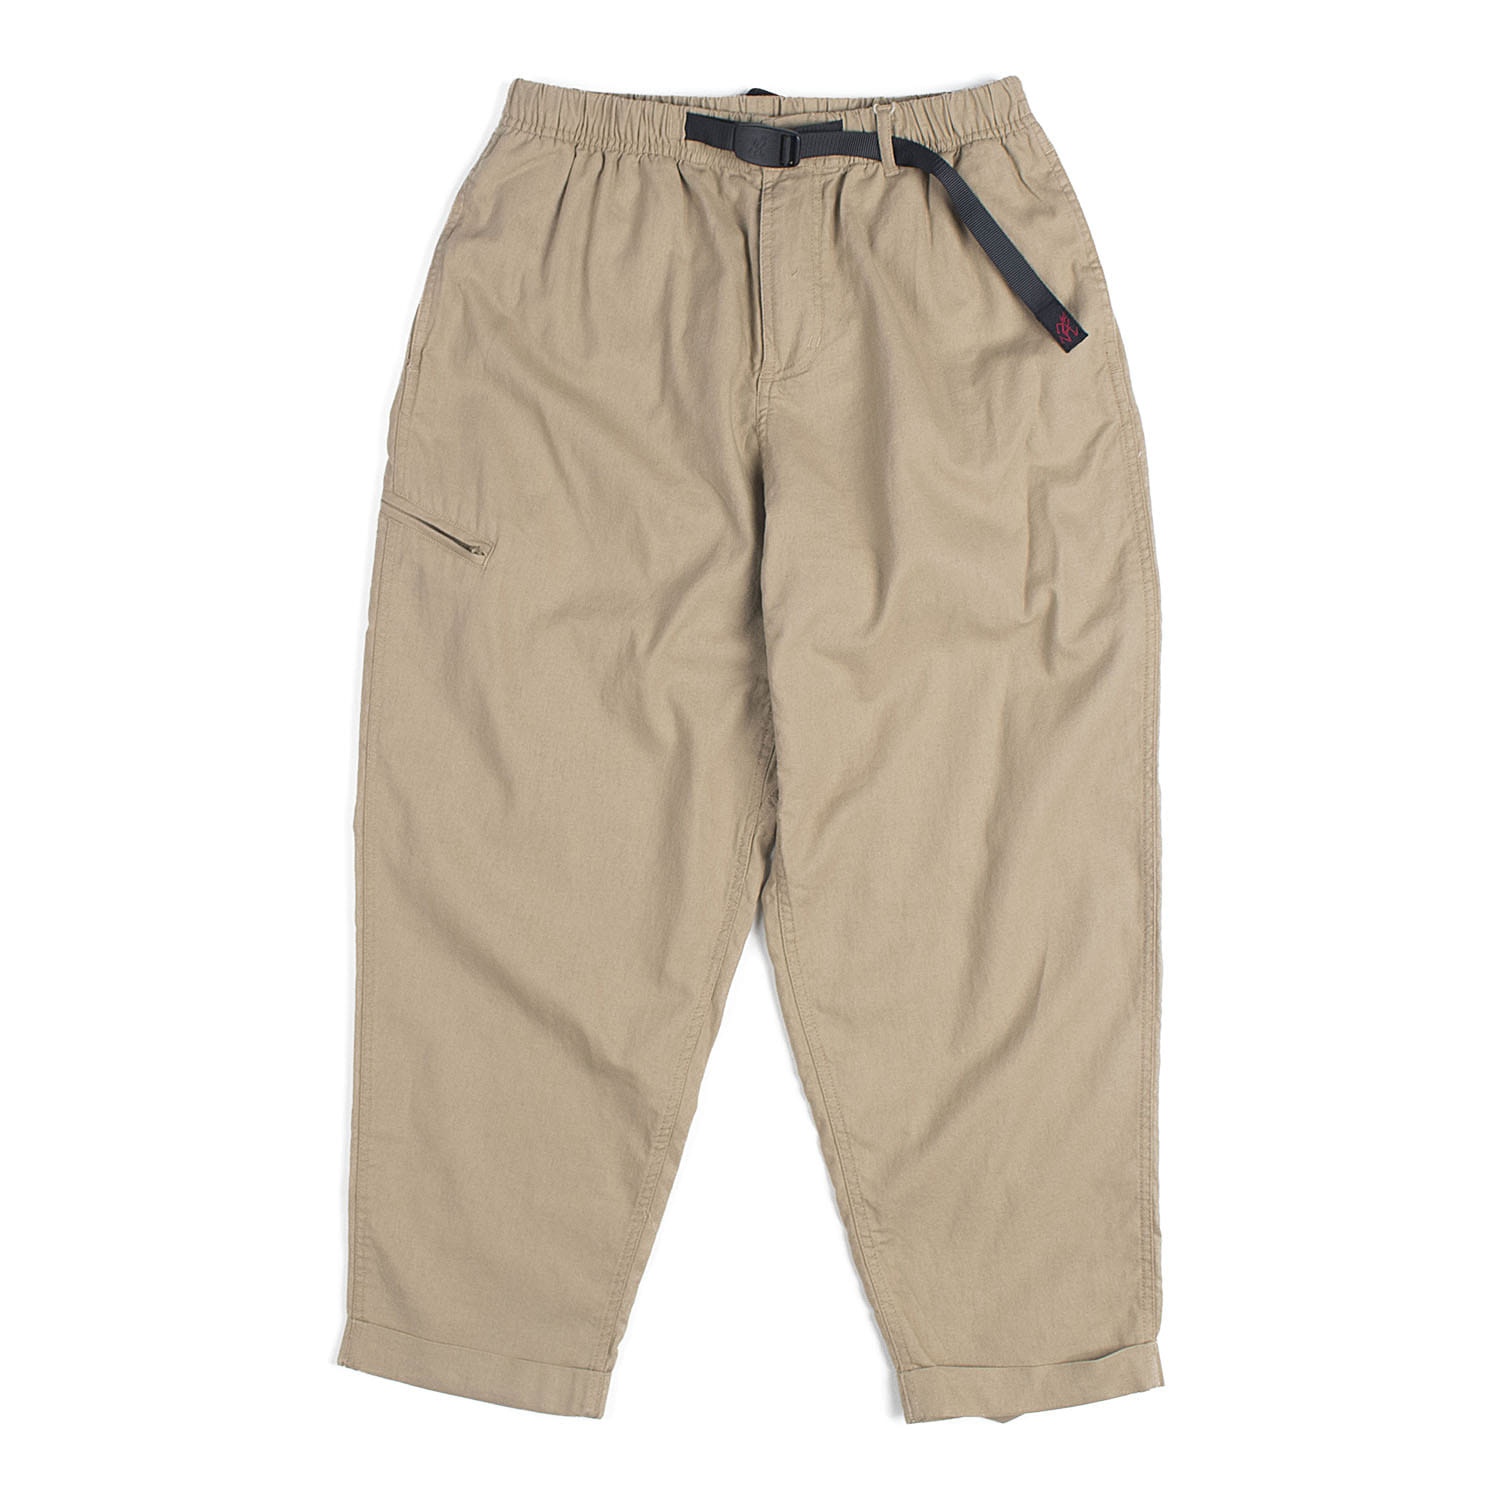 Linen Cotton Resort Pants (Chino)